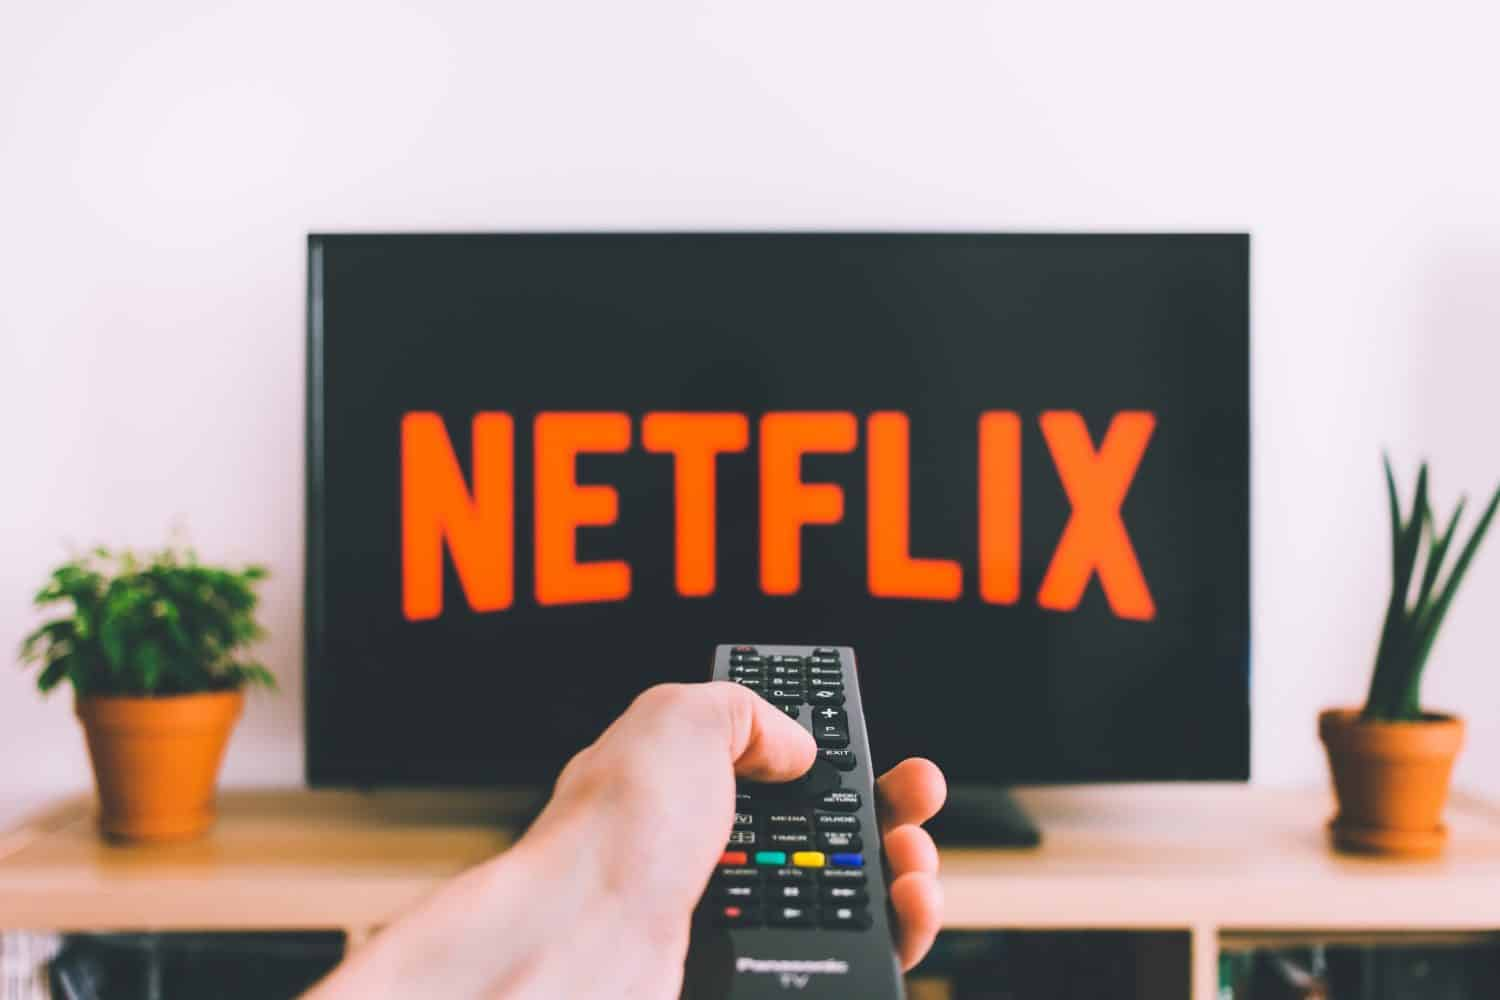 Person holding TV remote pointed at TV displaying the Netflix logo